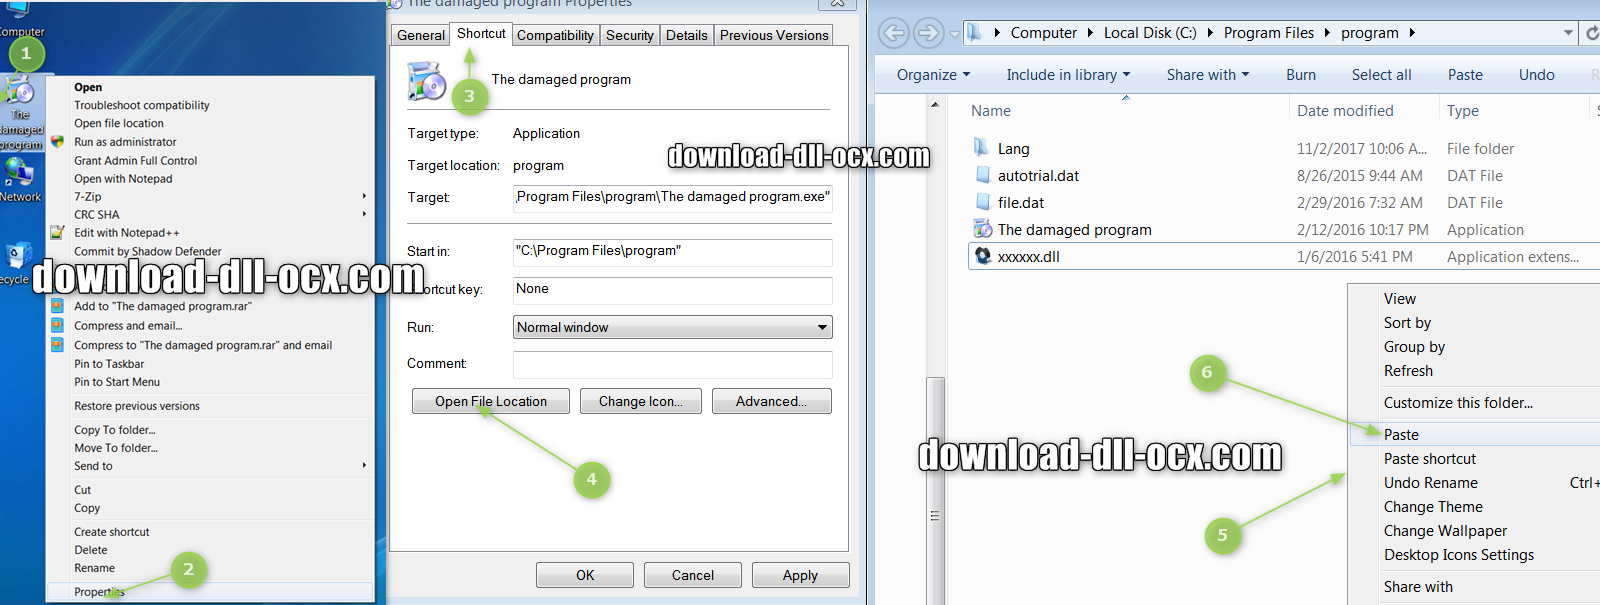 how to install Java_uno_accessbridge.dll file? for fix missing